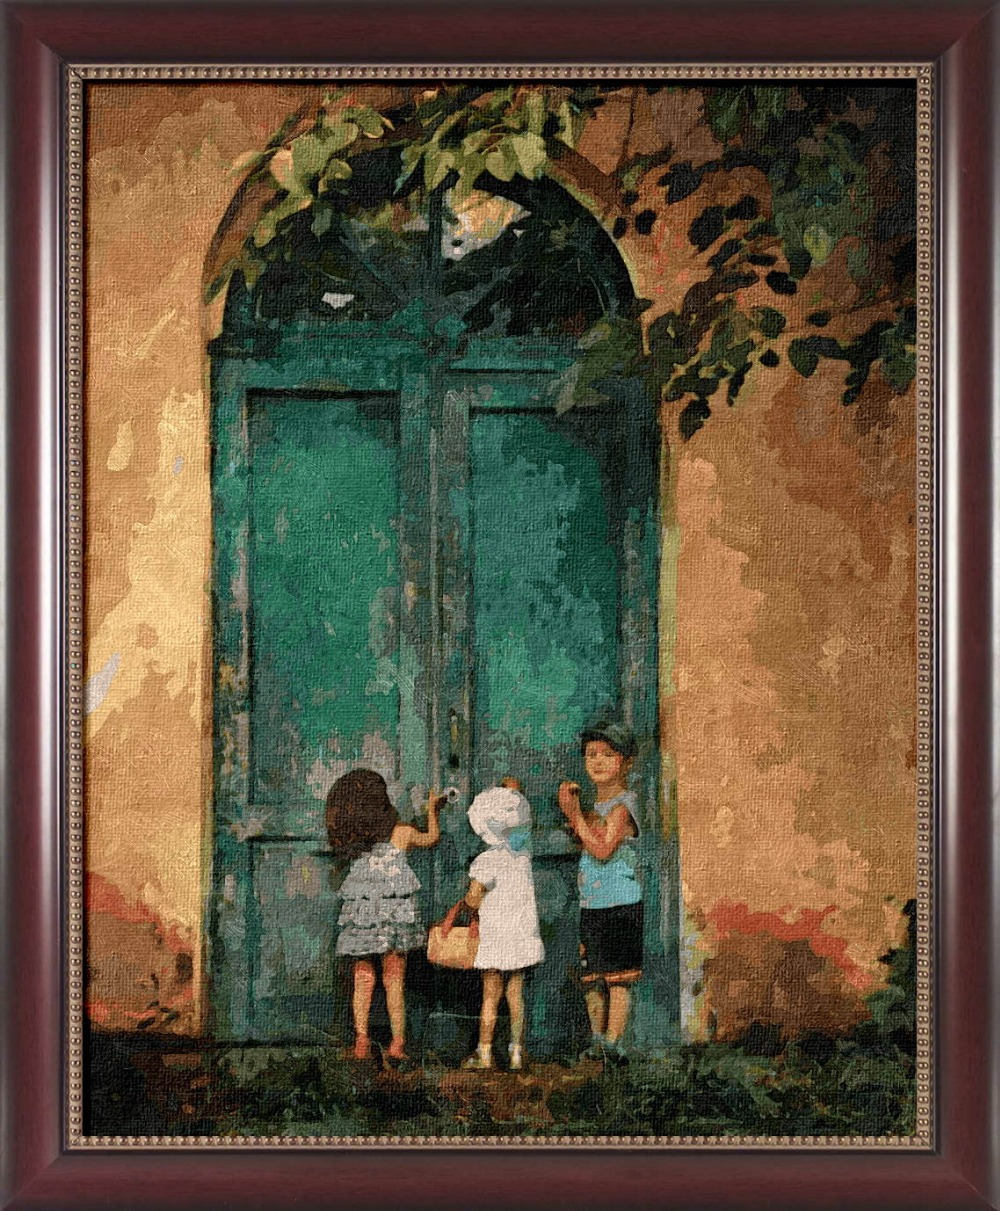 Framed painting by number paint by numbers for home decor frame picture oil painting canvas painting 4050 Knock on the door(China (Mainland))